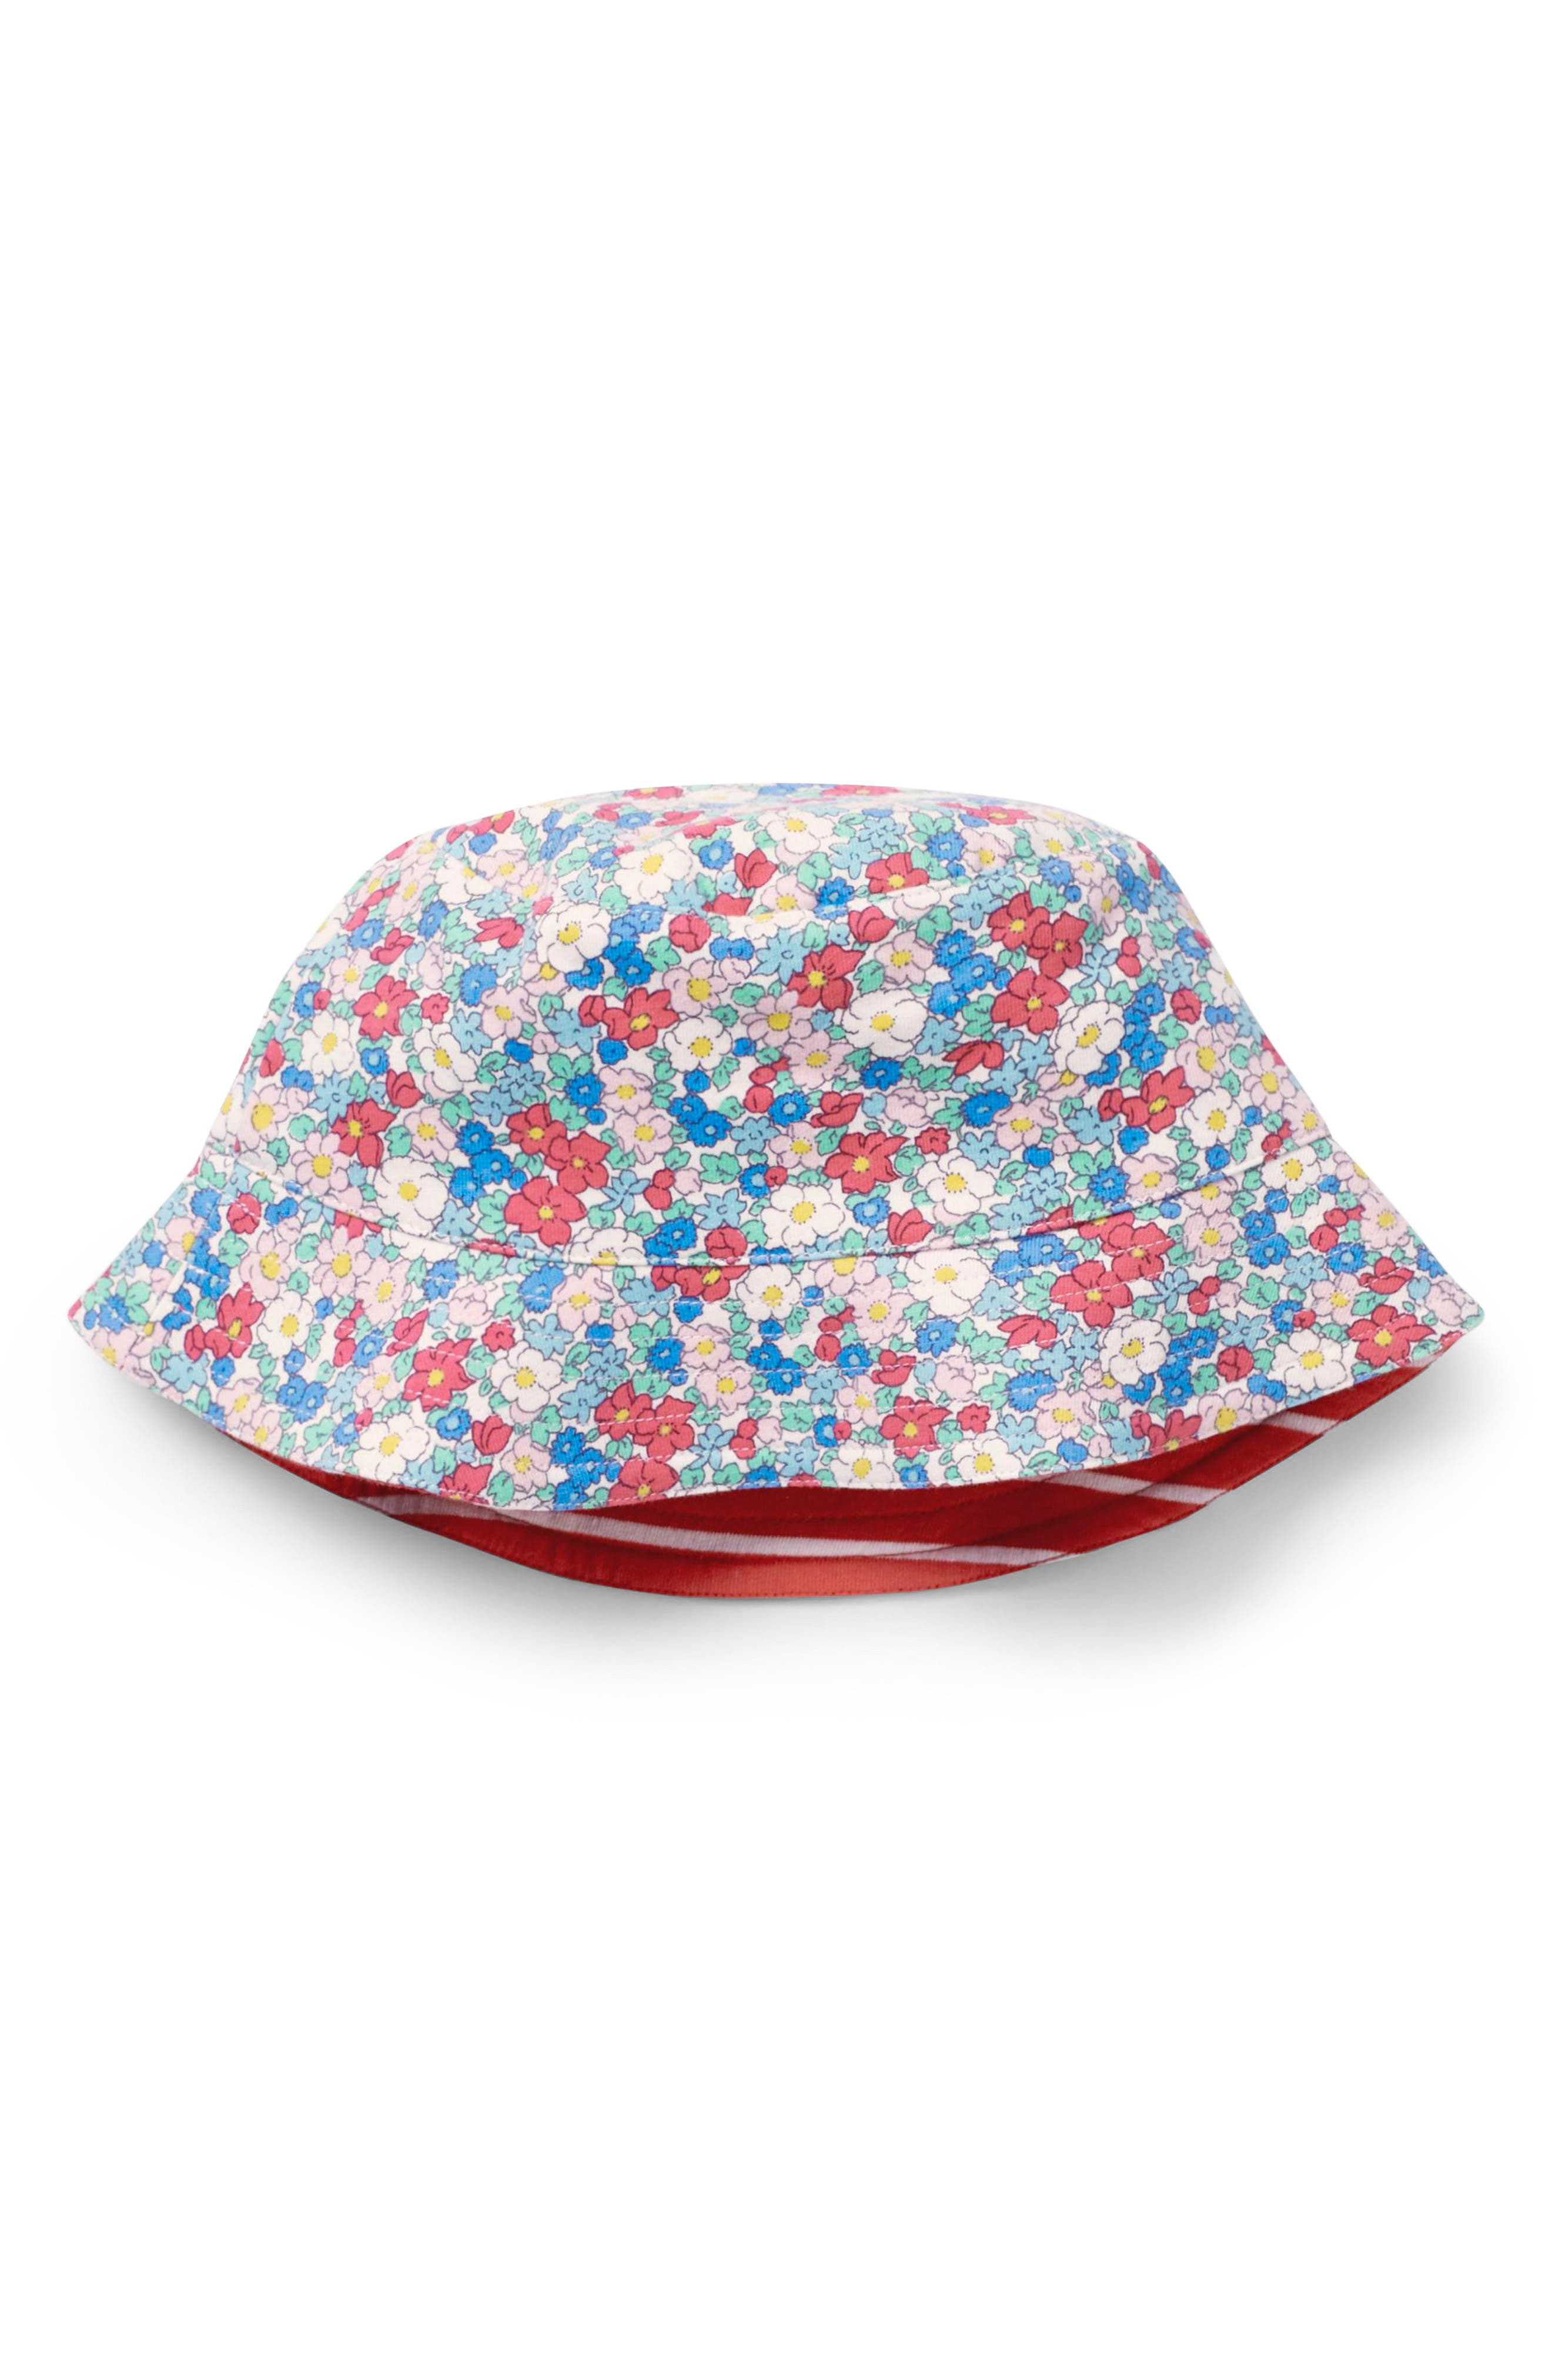 Jersey Reversible Sun Hat,                             Main thumbnail 1, color,                             Strawberry Split Pink Floral